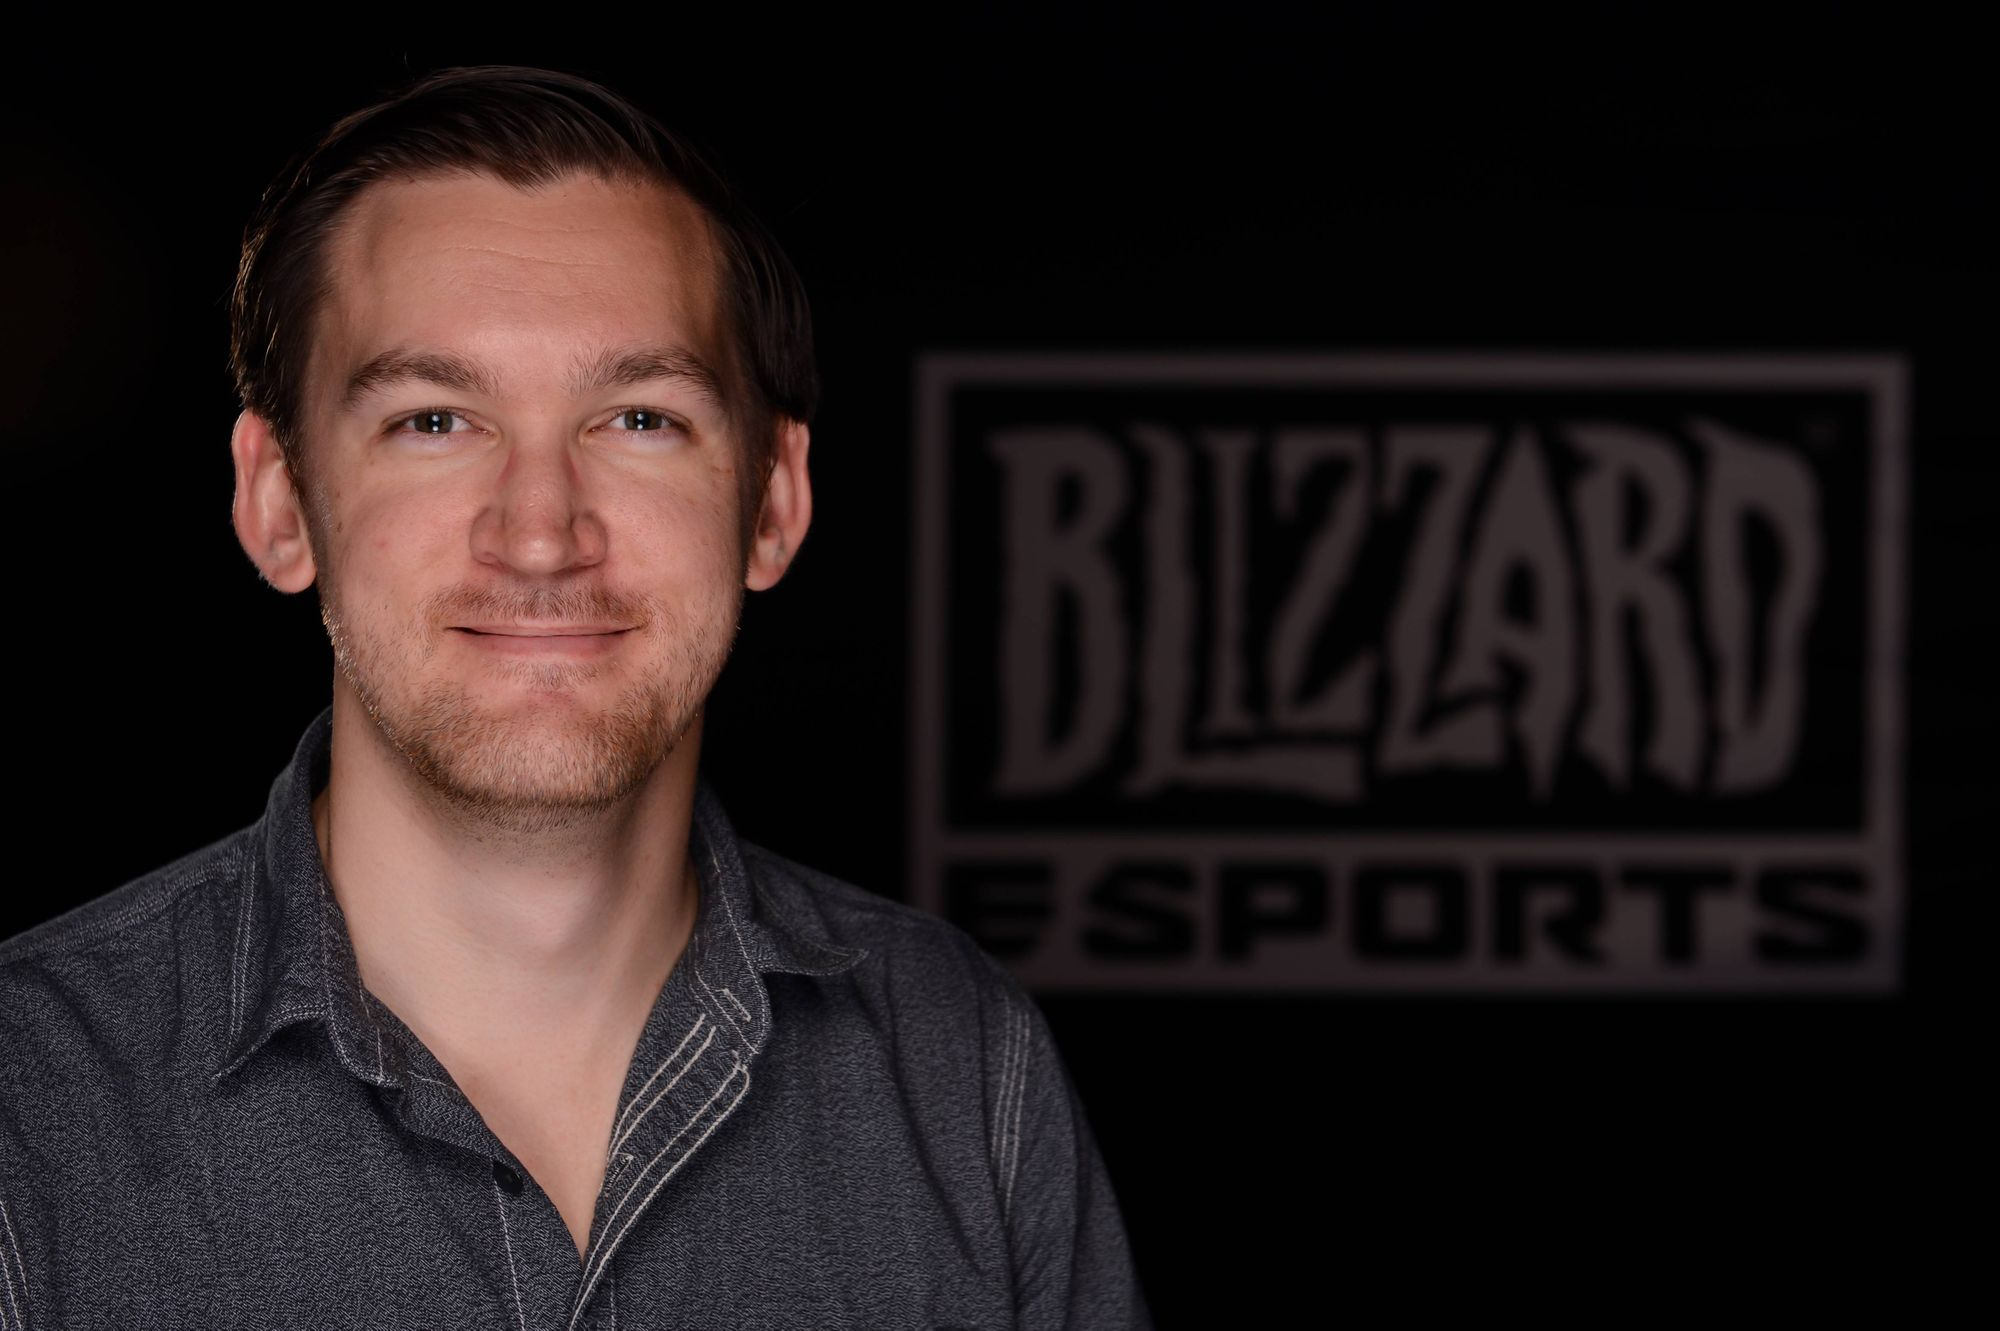 Interview with Hearthstone Esports